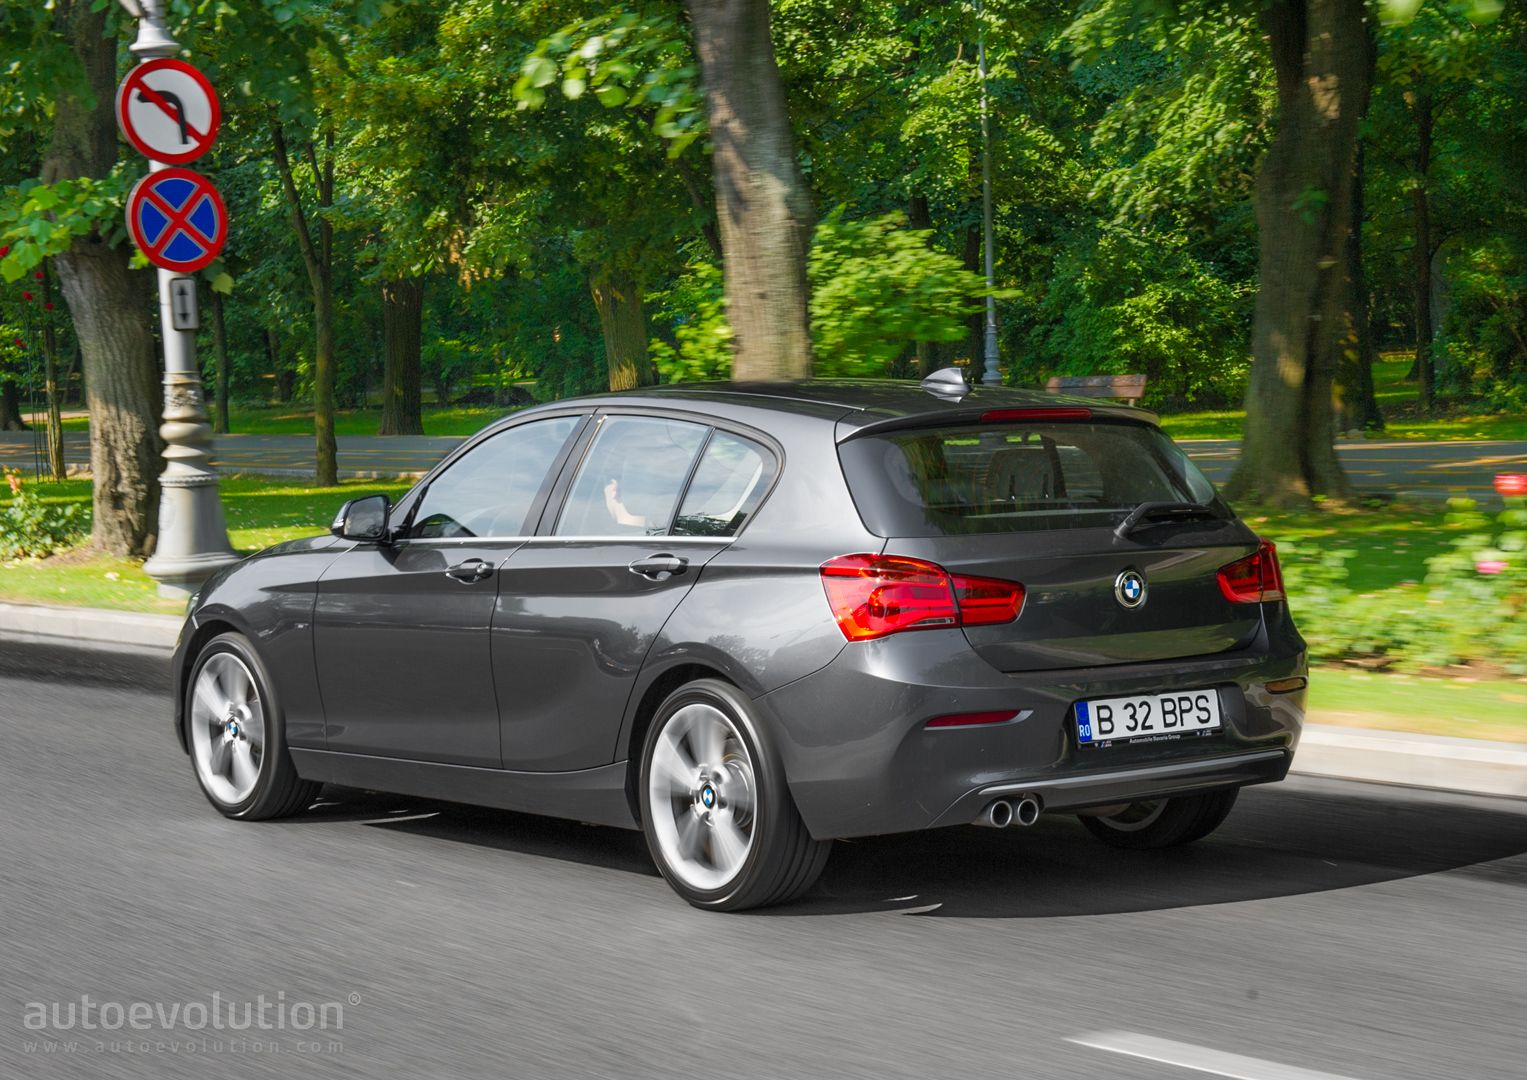 2015 bmw 1 series facelift review autoevolution. Black Bedroom Furniture Sets. Home Design Ideas